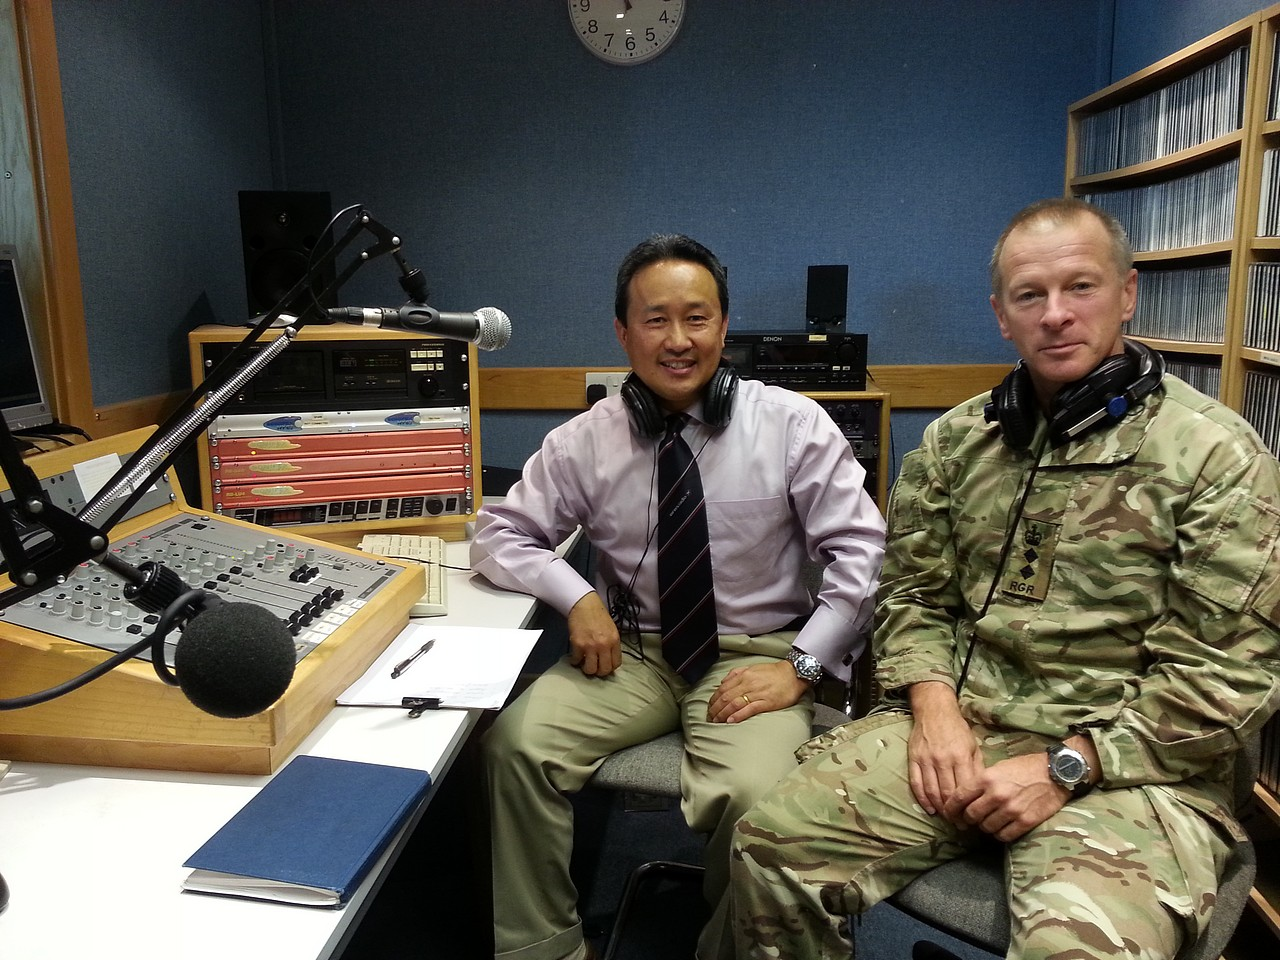 BFBS Interview